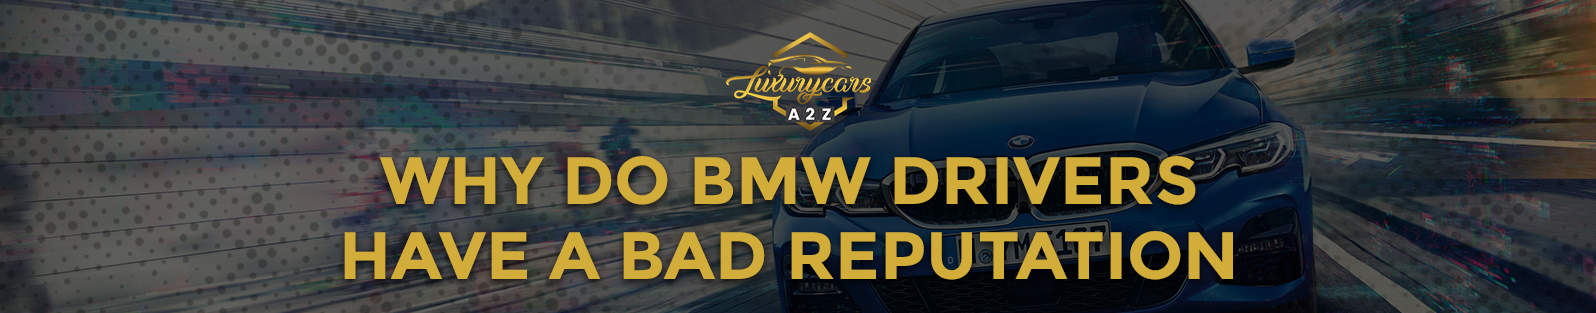 Why do BMW drivers have a bad reputation?